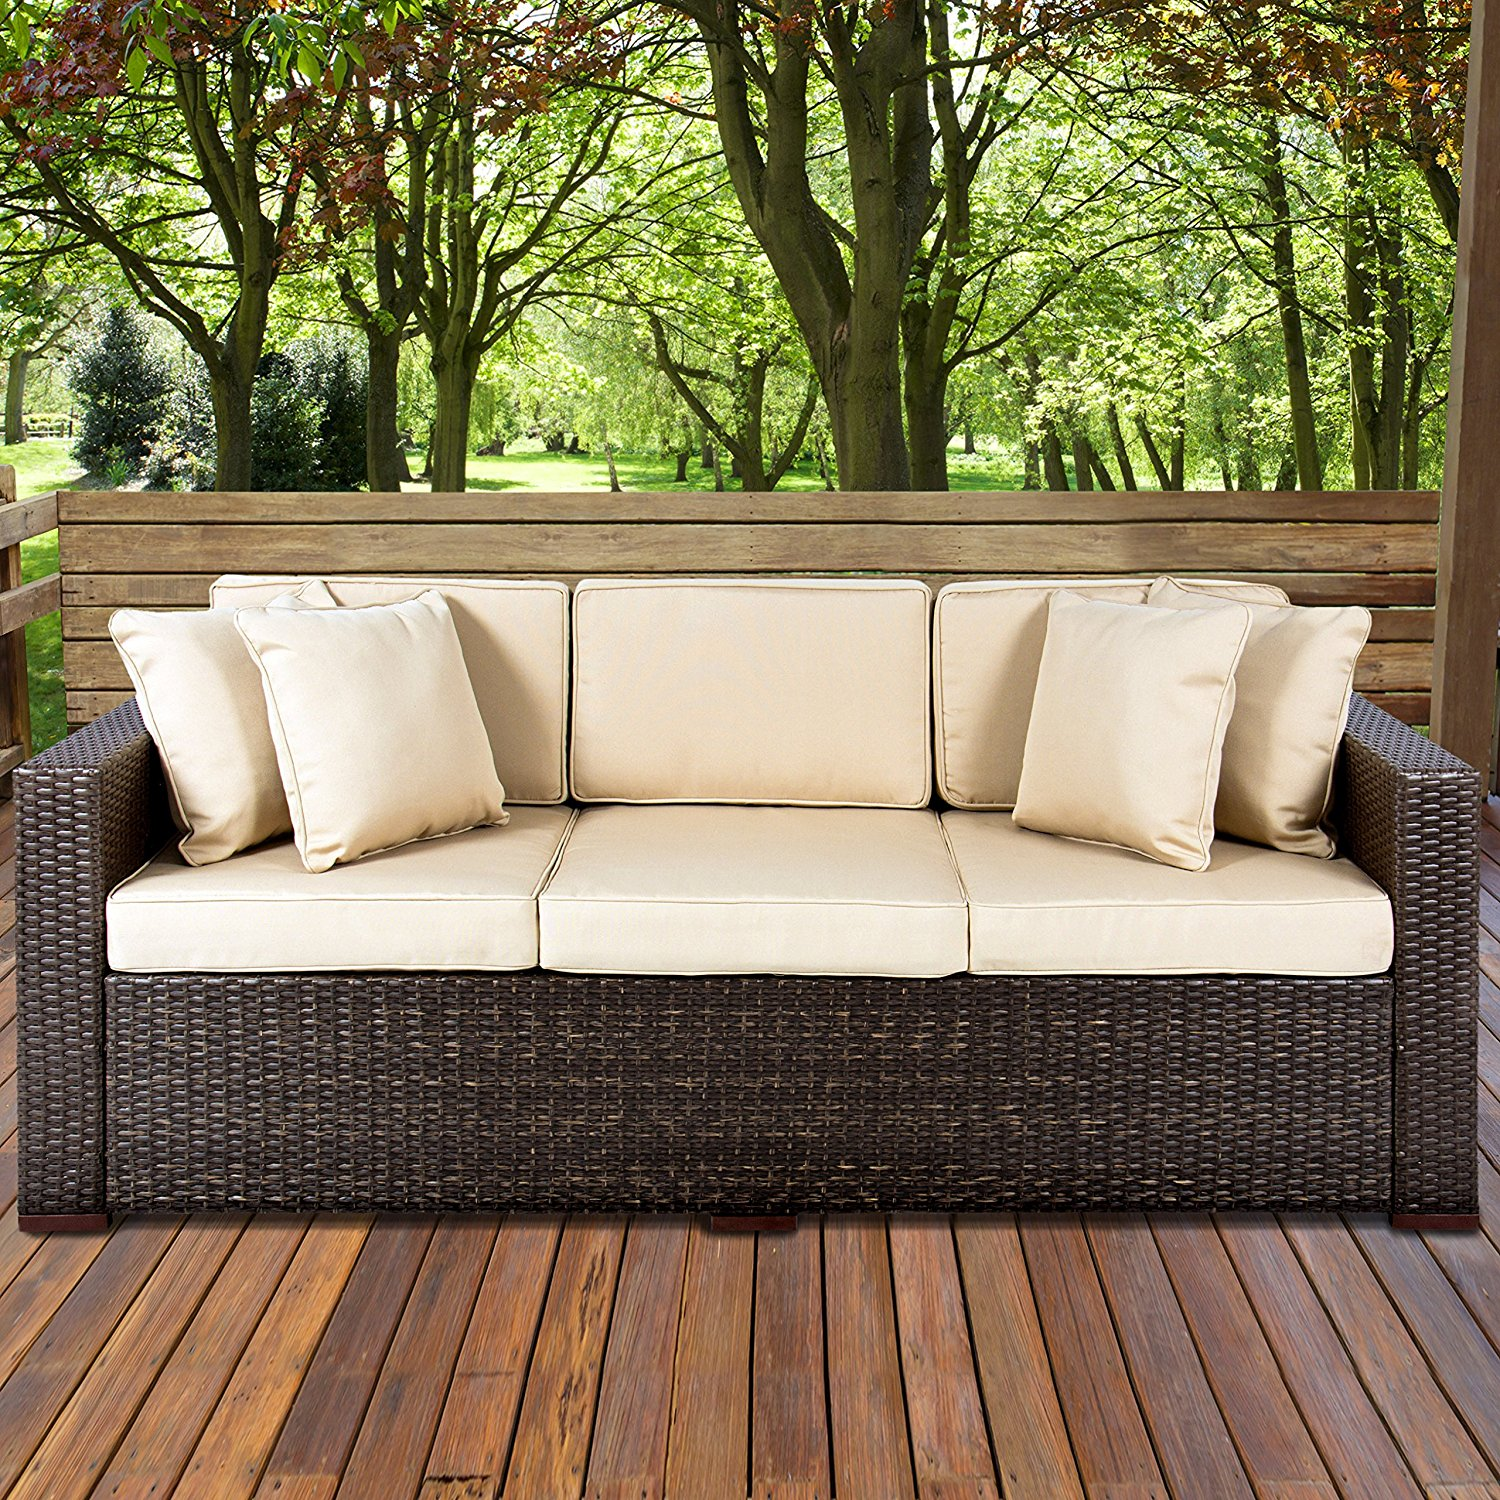 - Top 10 Best Patio Sofas - Top Best Pro Review